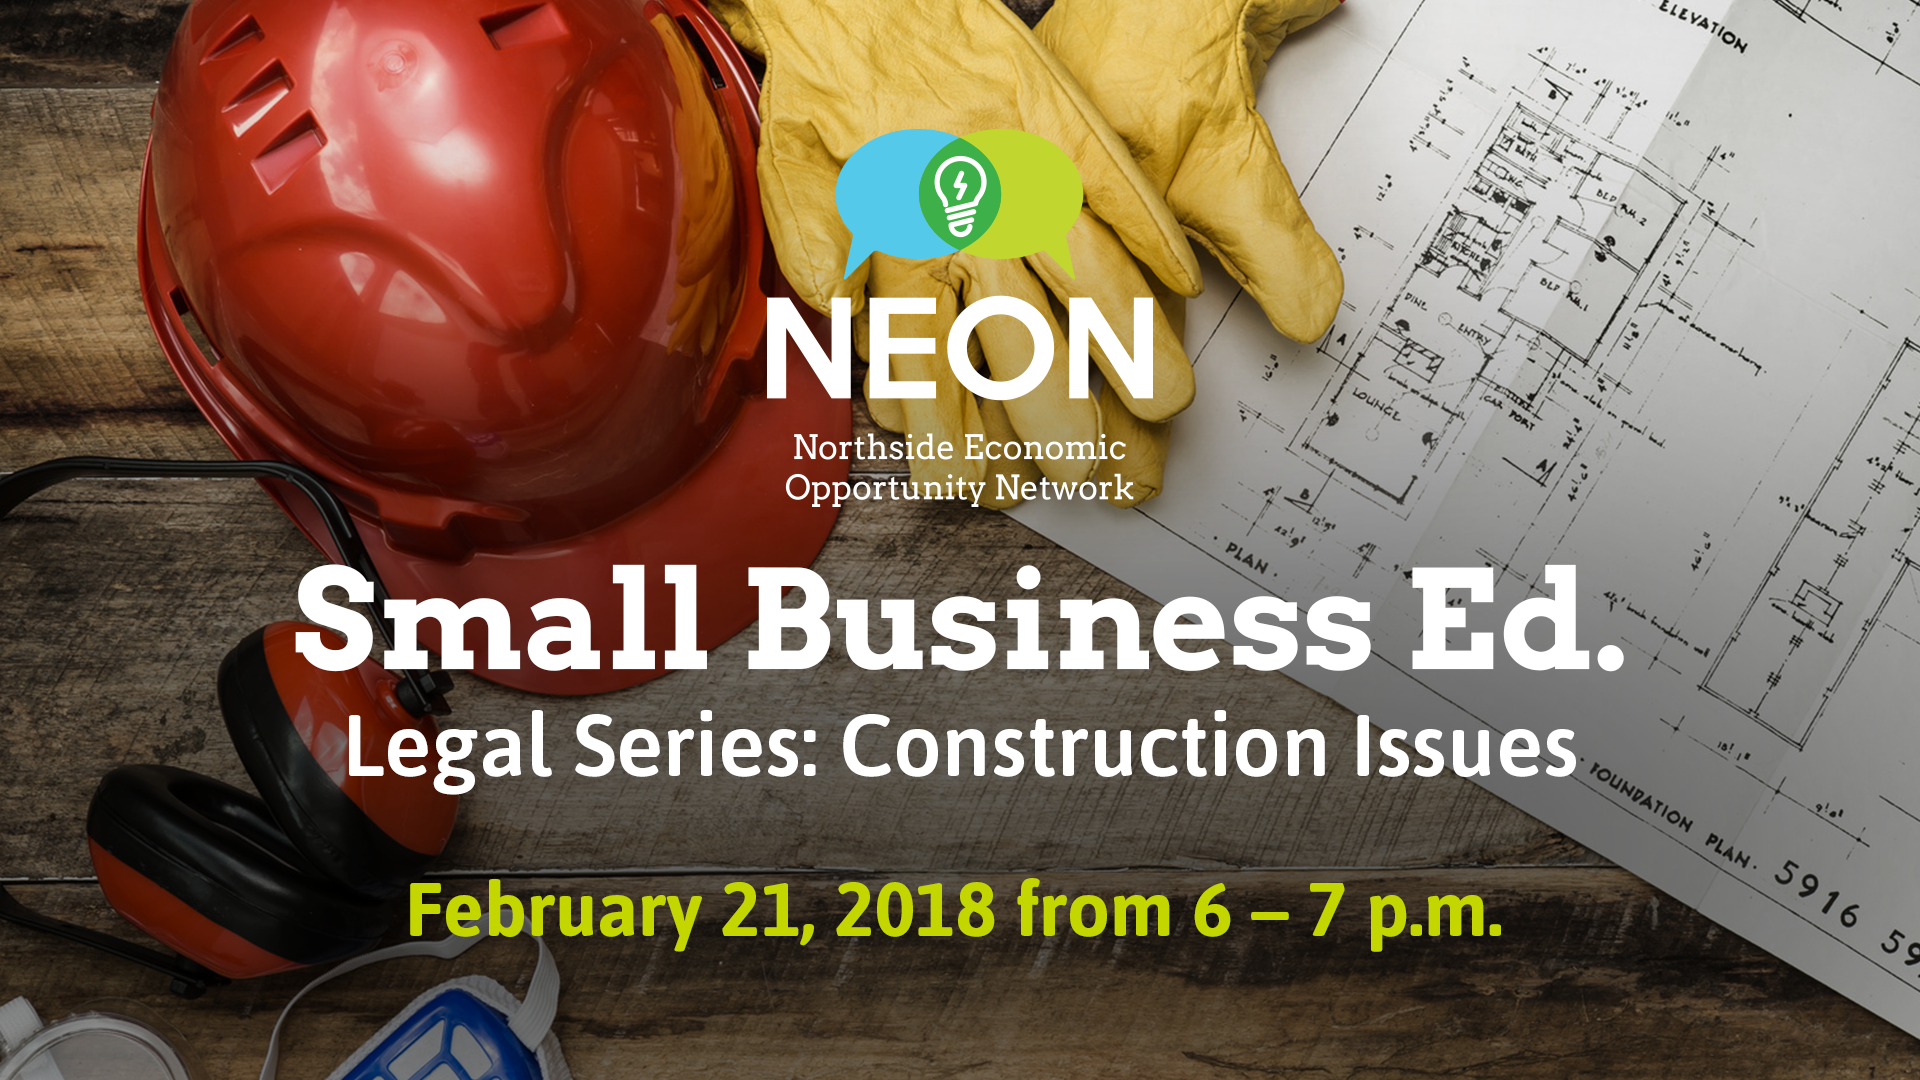 Small Business Ed. Legal Series: Construction